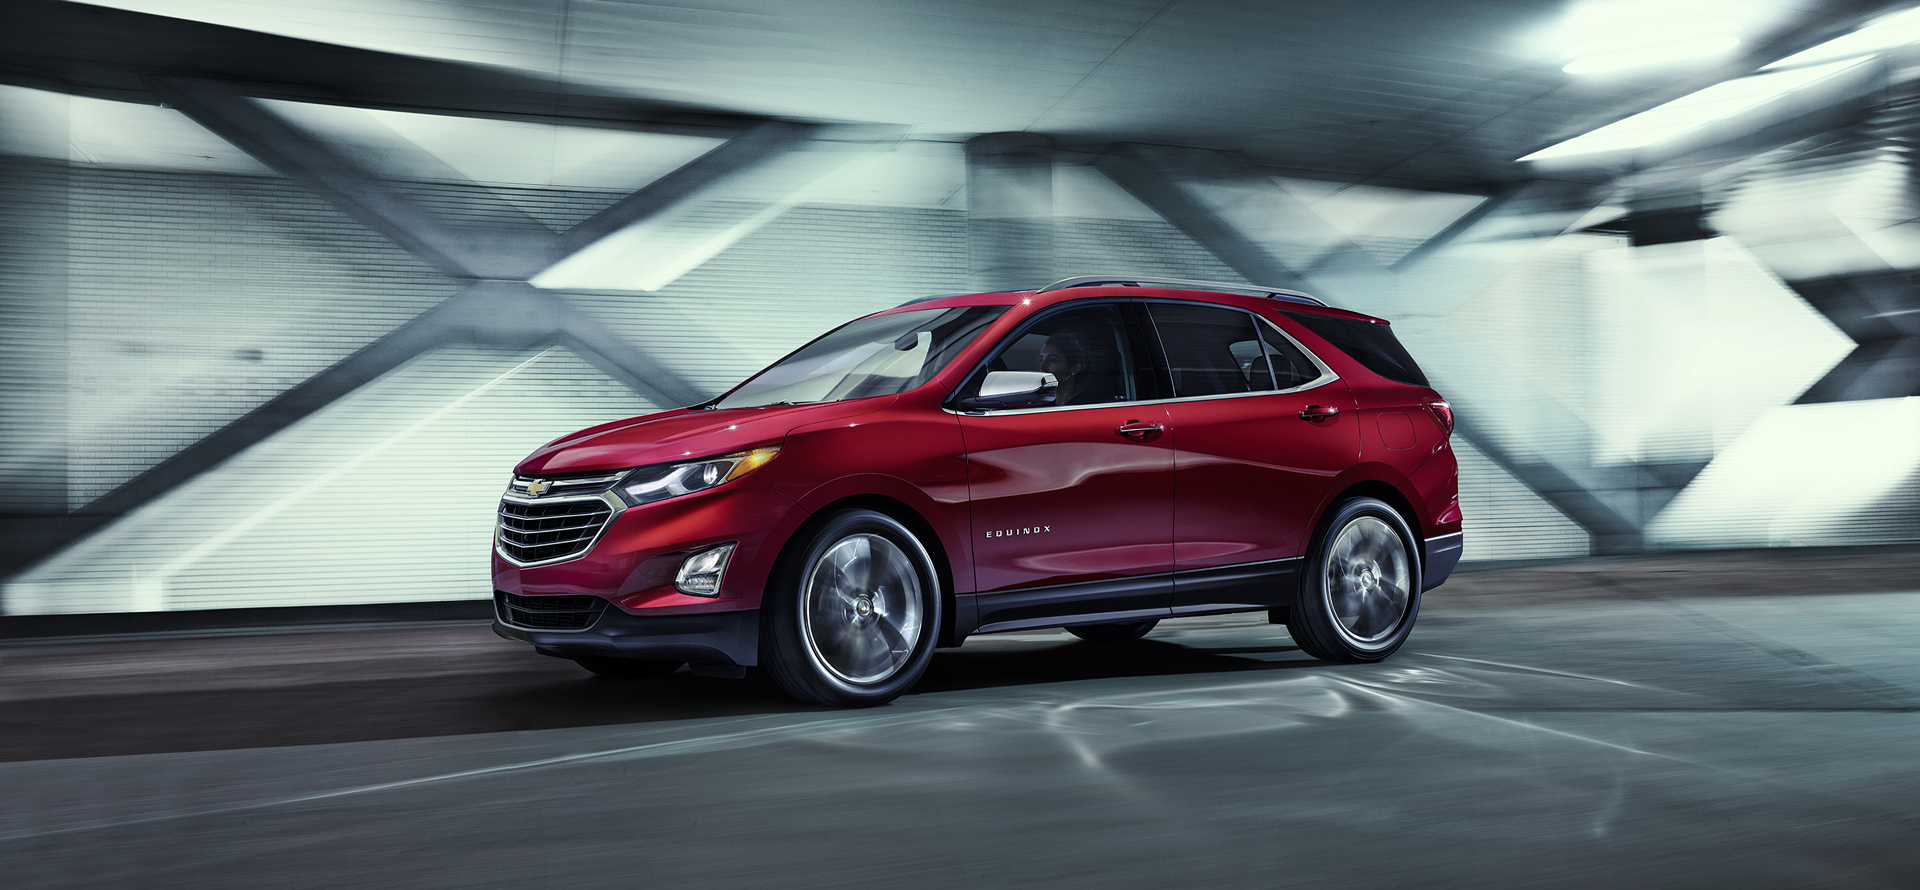 2018 Chevrolet Equinox © General Motors